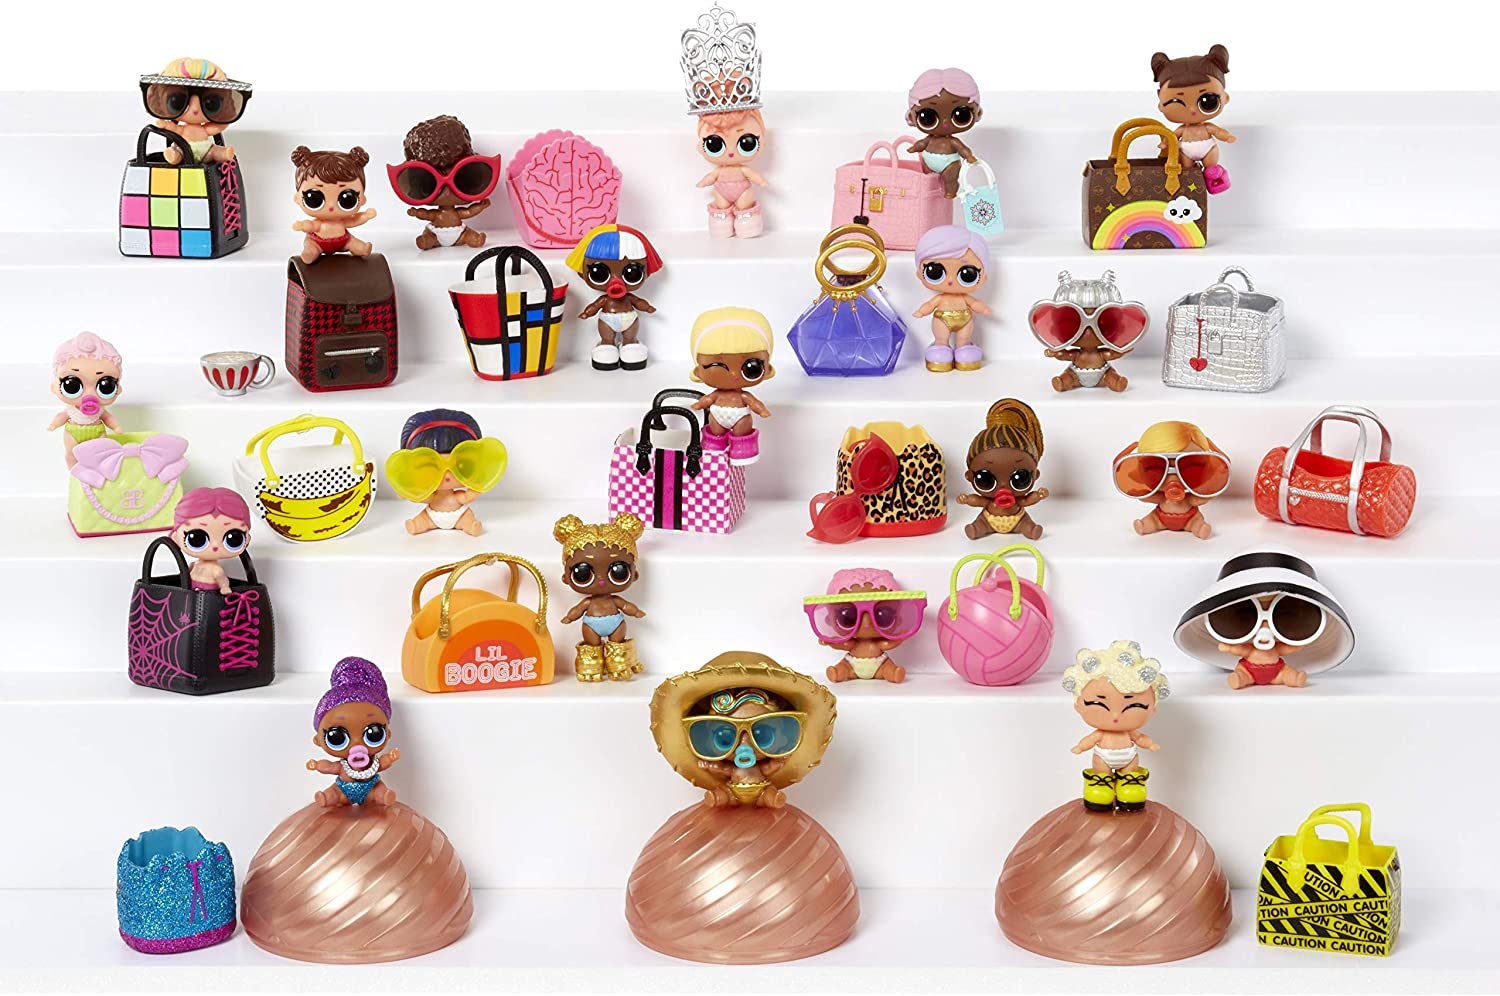 Lil Sisters Series 4 EYE SPY LIL Boogie Babe Lil Sis Girl Gift Toy